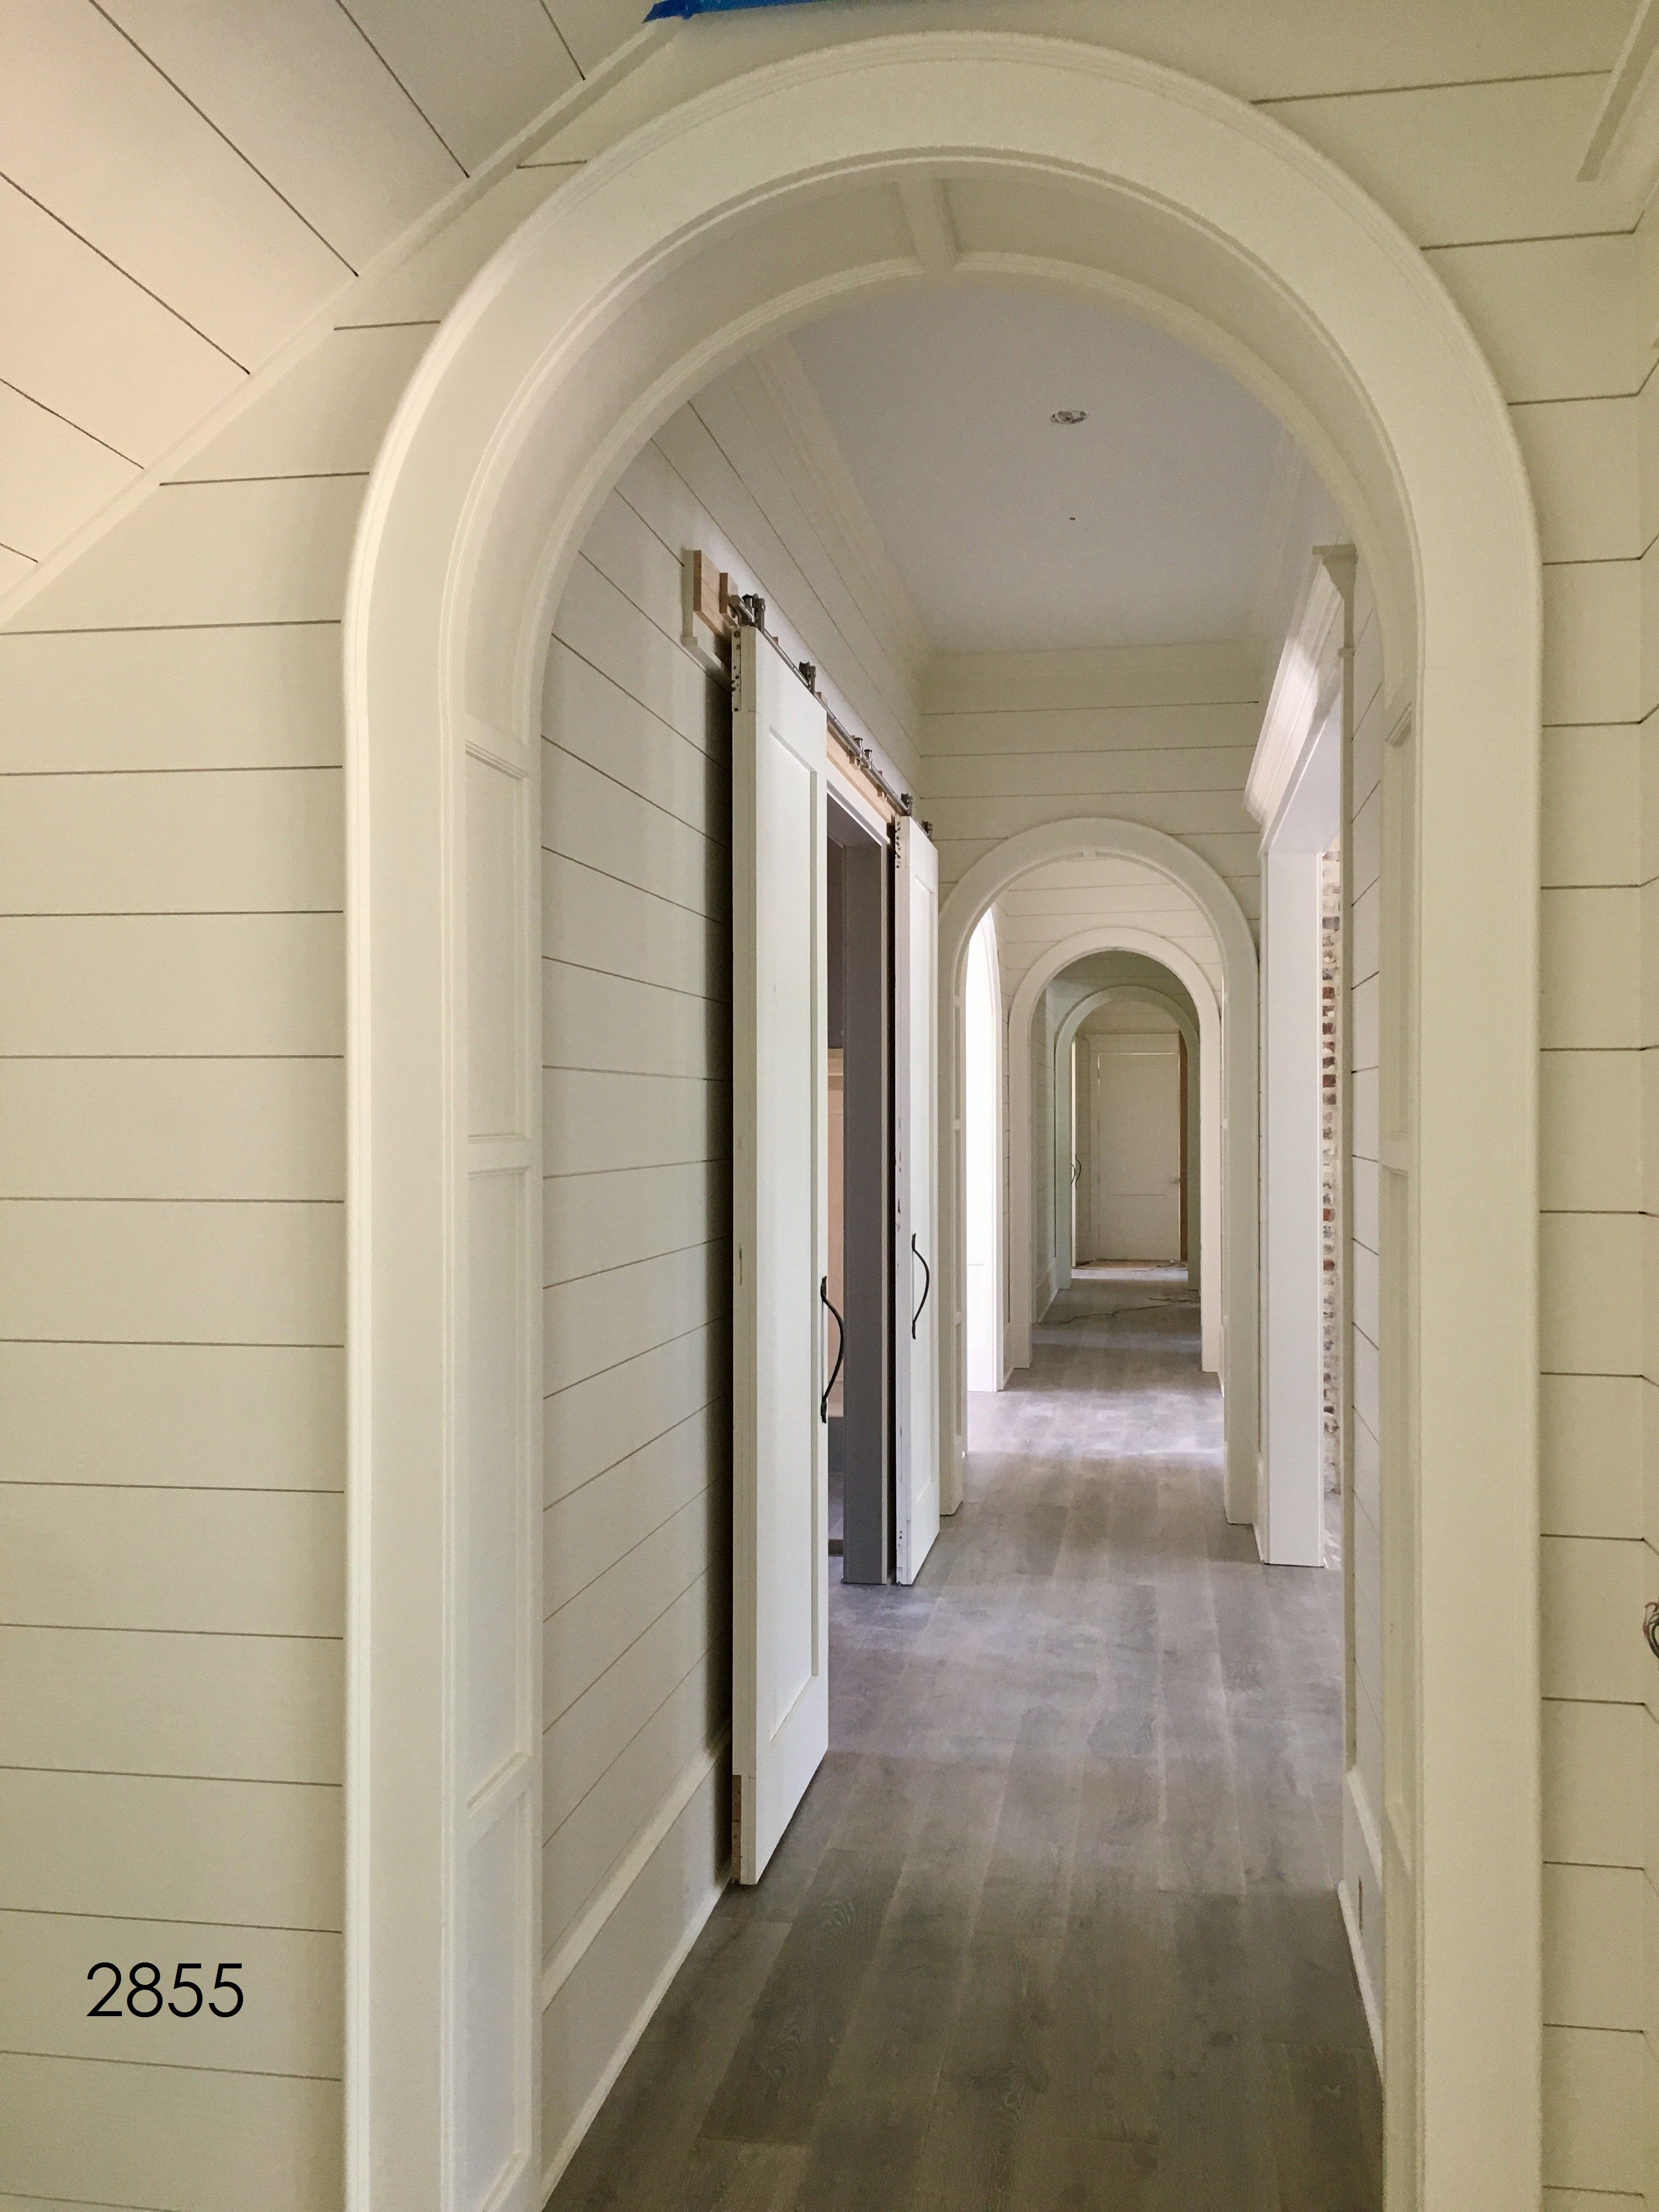 Half Round Arched Openings Are The Perfect Compliment To